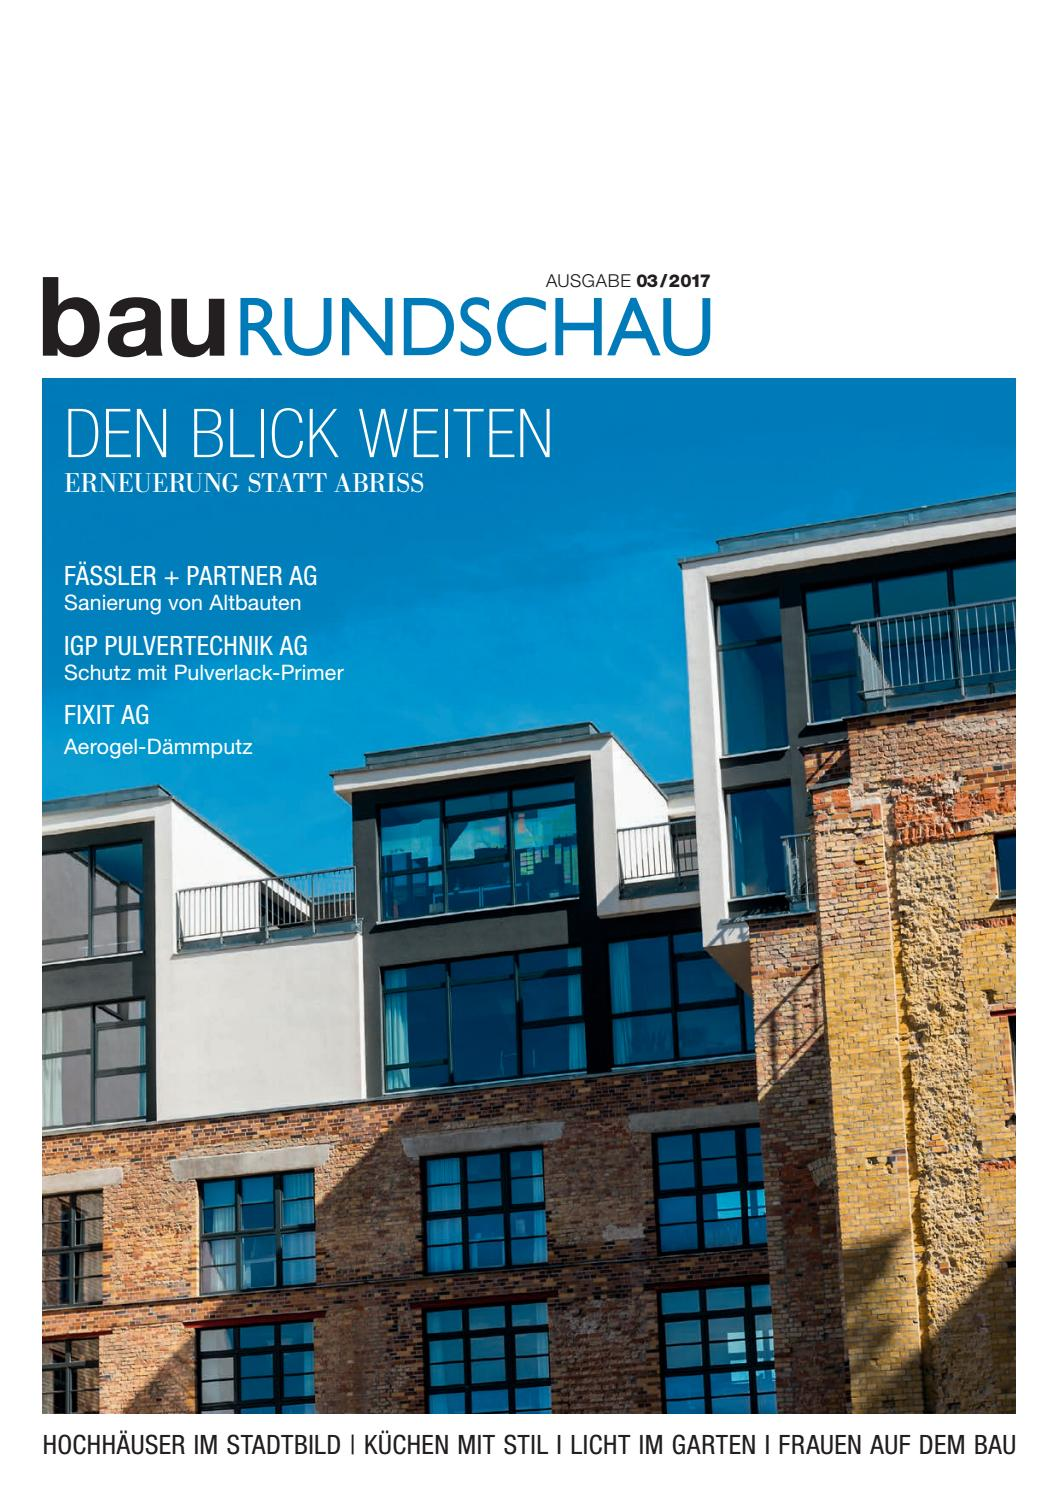 BauRUNDSCHAU 03/2017 By RundschauMEDIEN AG   Issuu